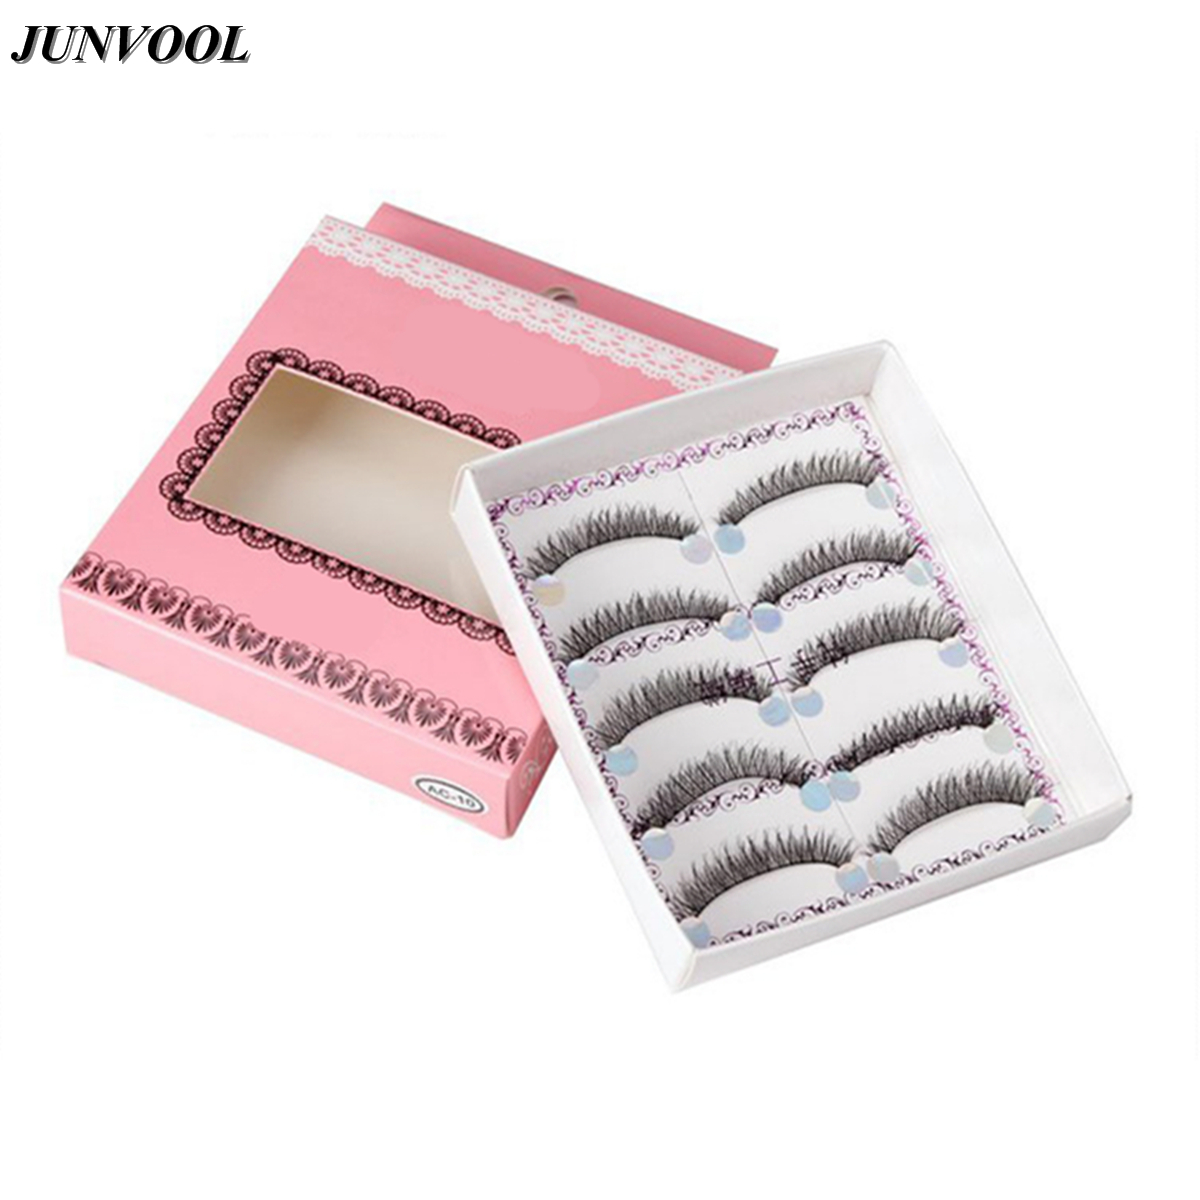 Cross Handmade False Eyelashes 5 Pairs Thick Black Cotton Stretch Fake Eyelash Lashes Makeup Tips Natural Fake Eye Lash